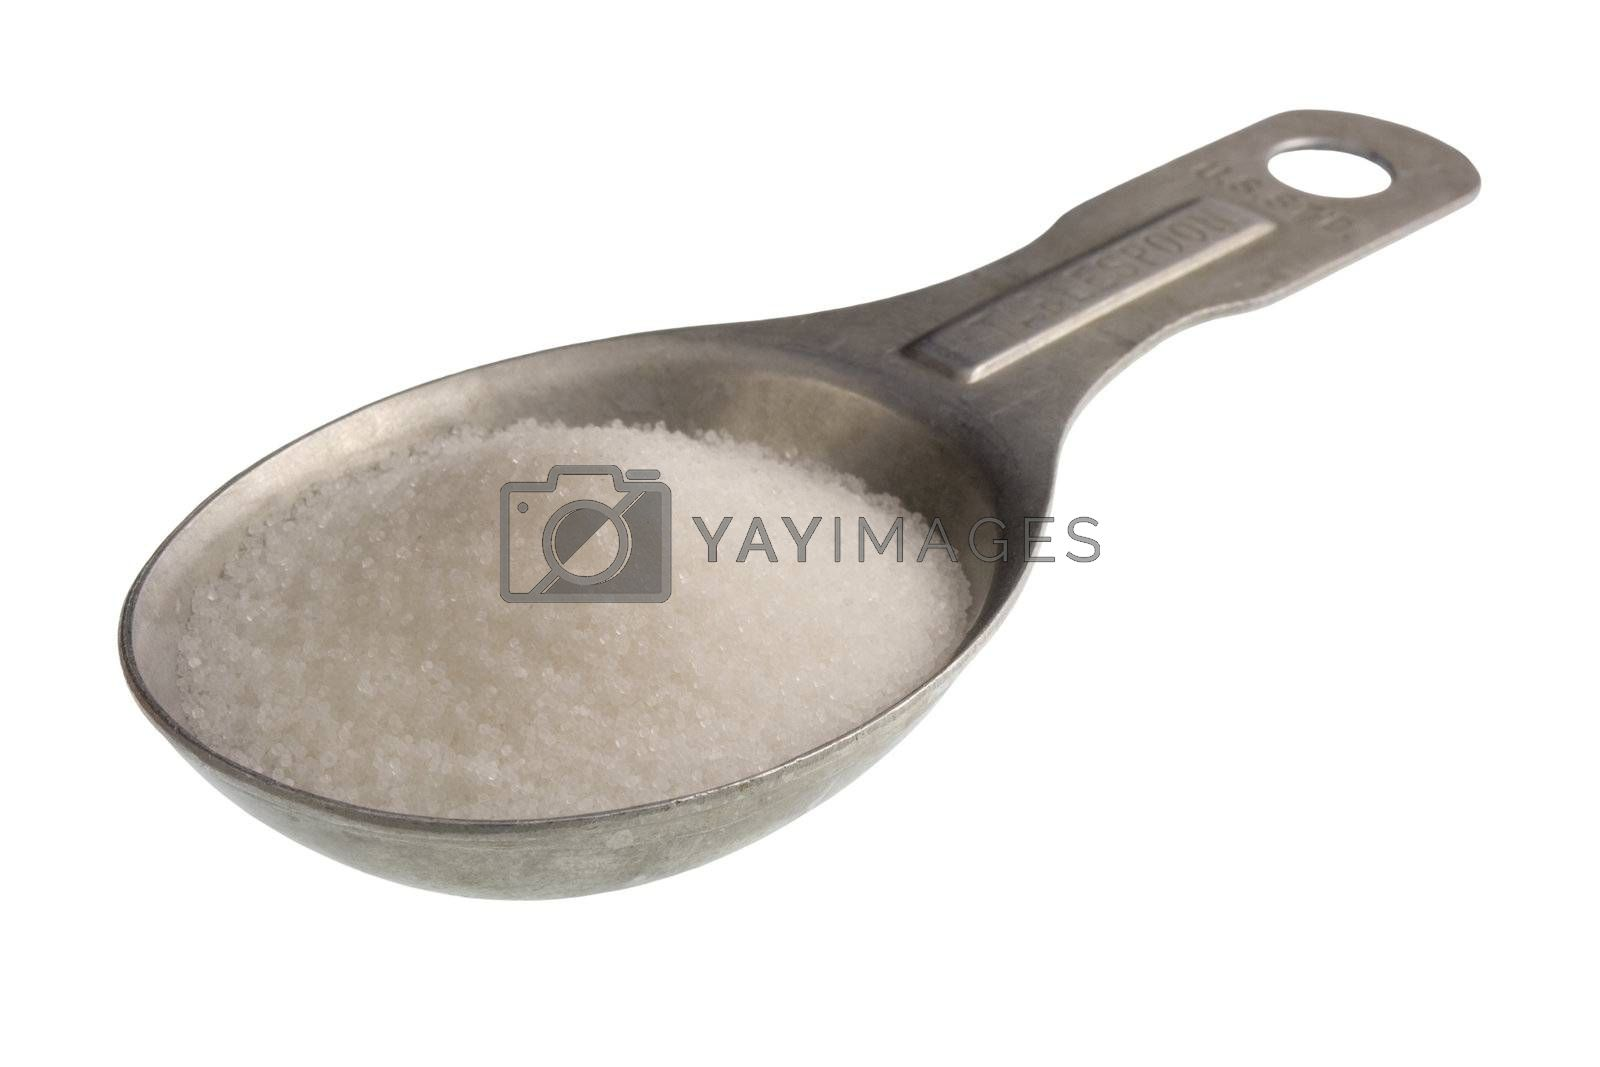 old aluminum measuring spoon full of salt isoalted on white, clipping path included